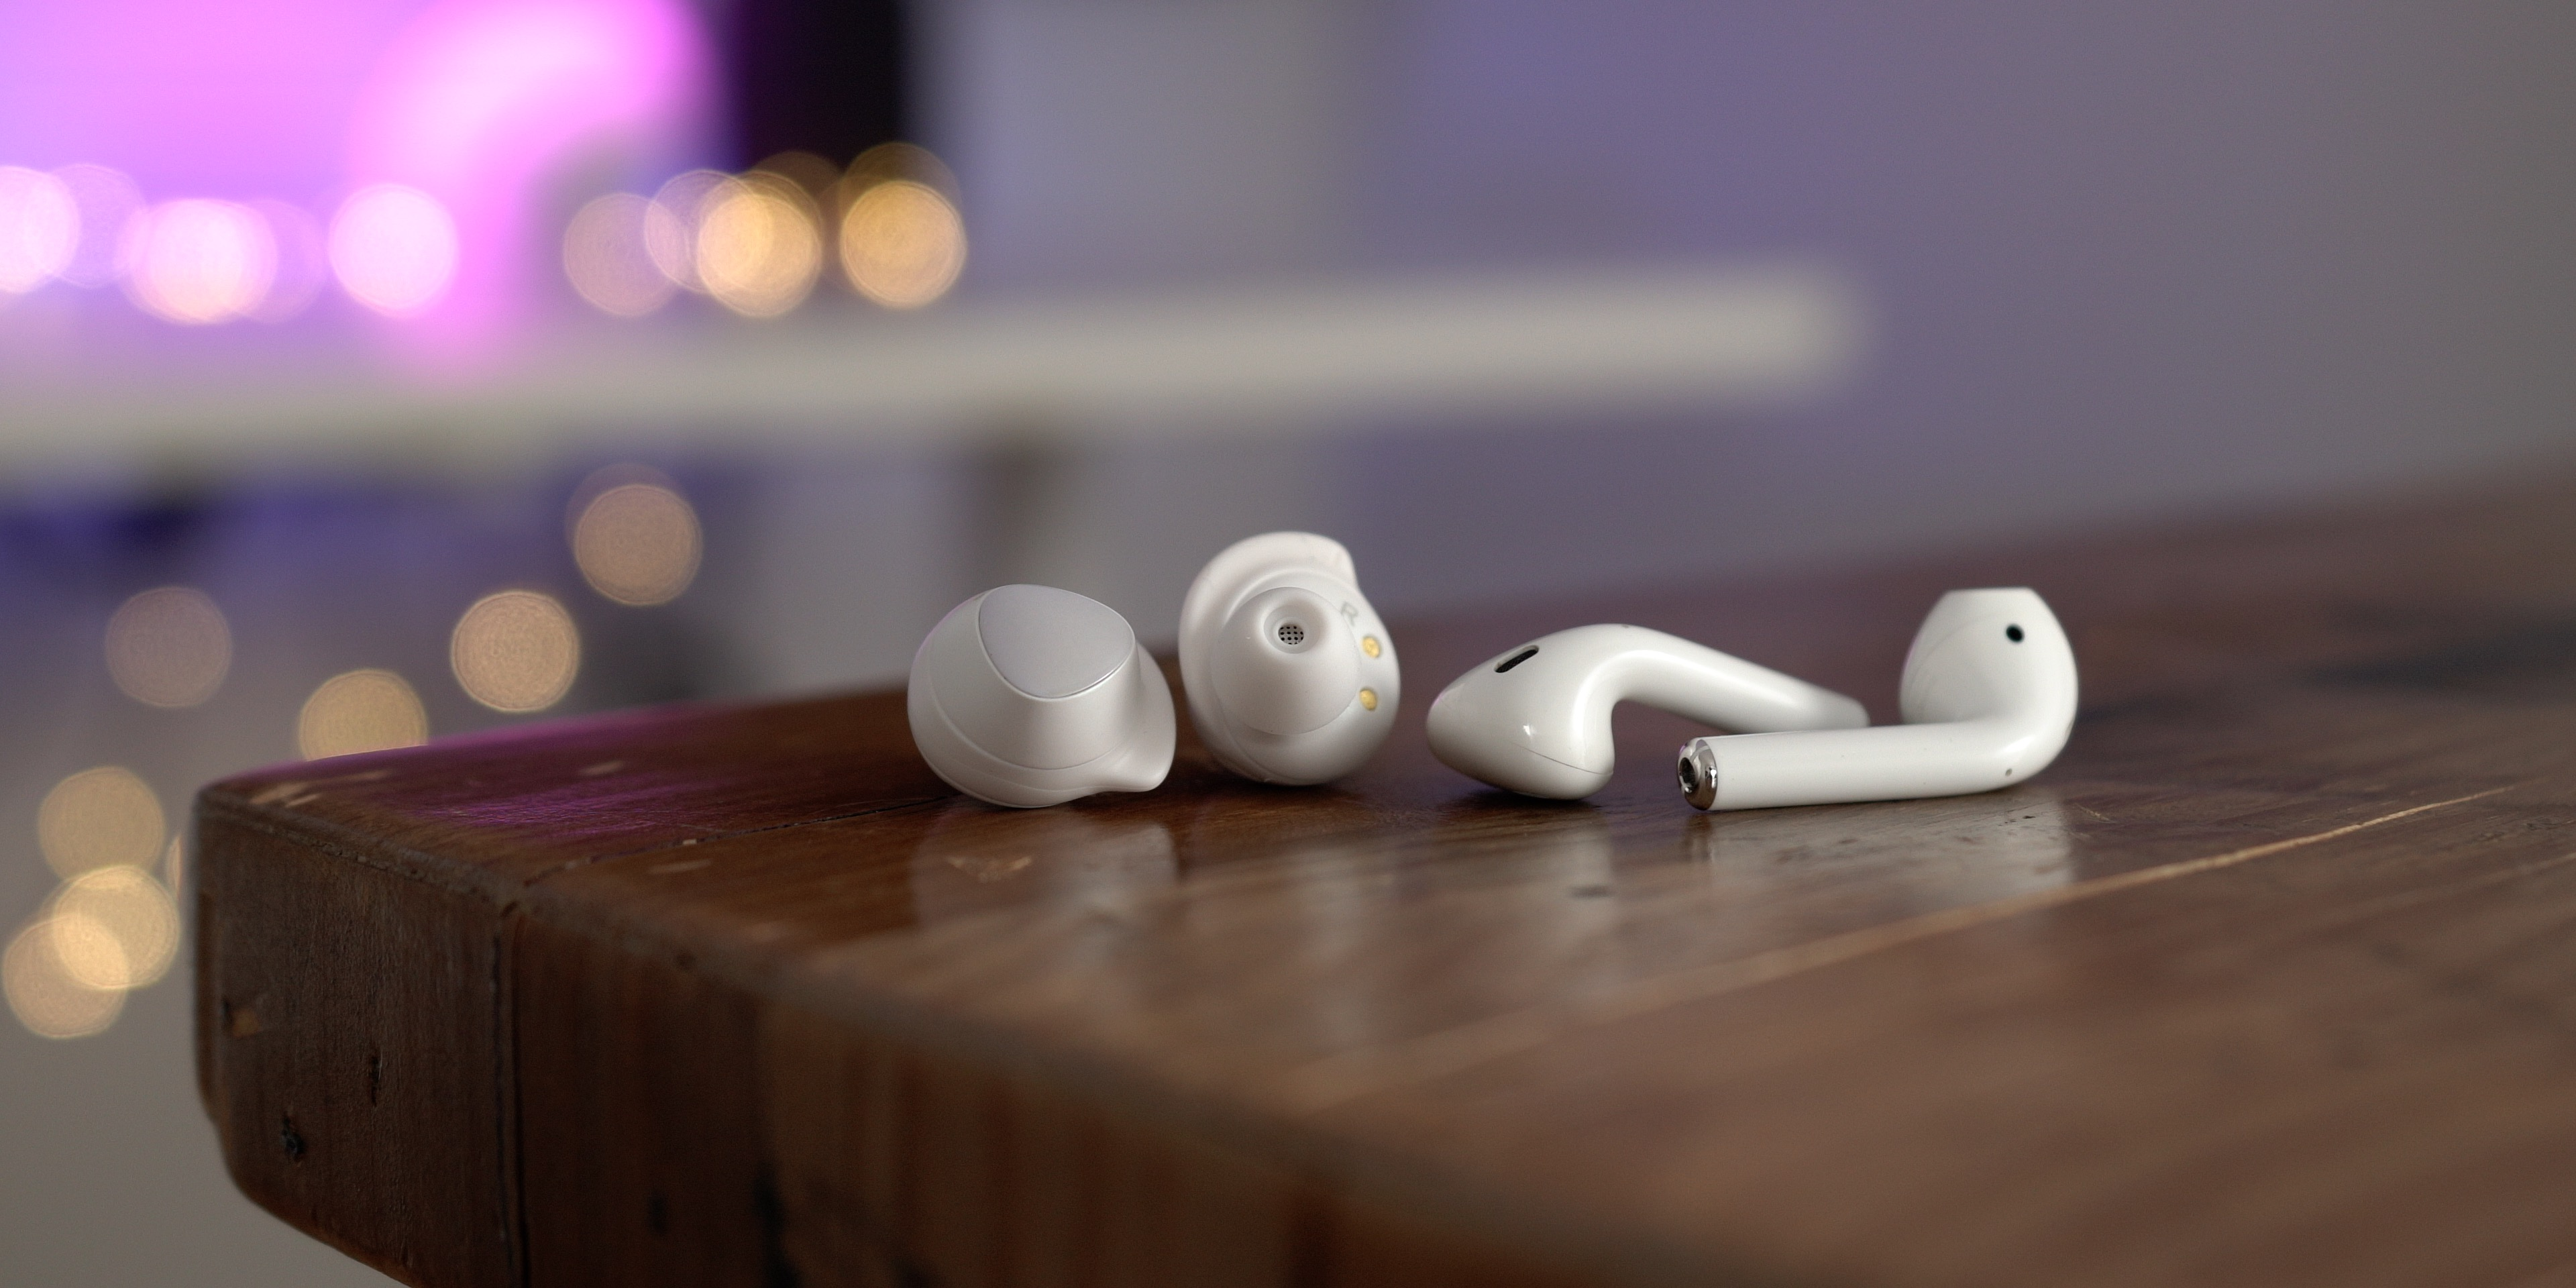 Samsung Galaxy Buds vs AirPods